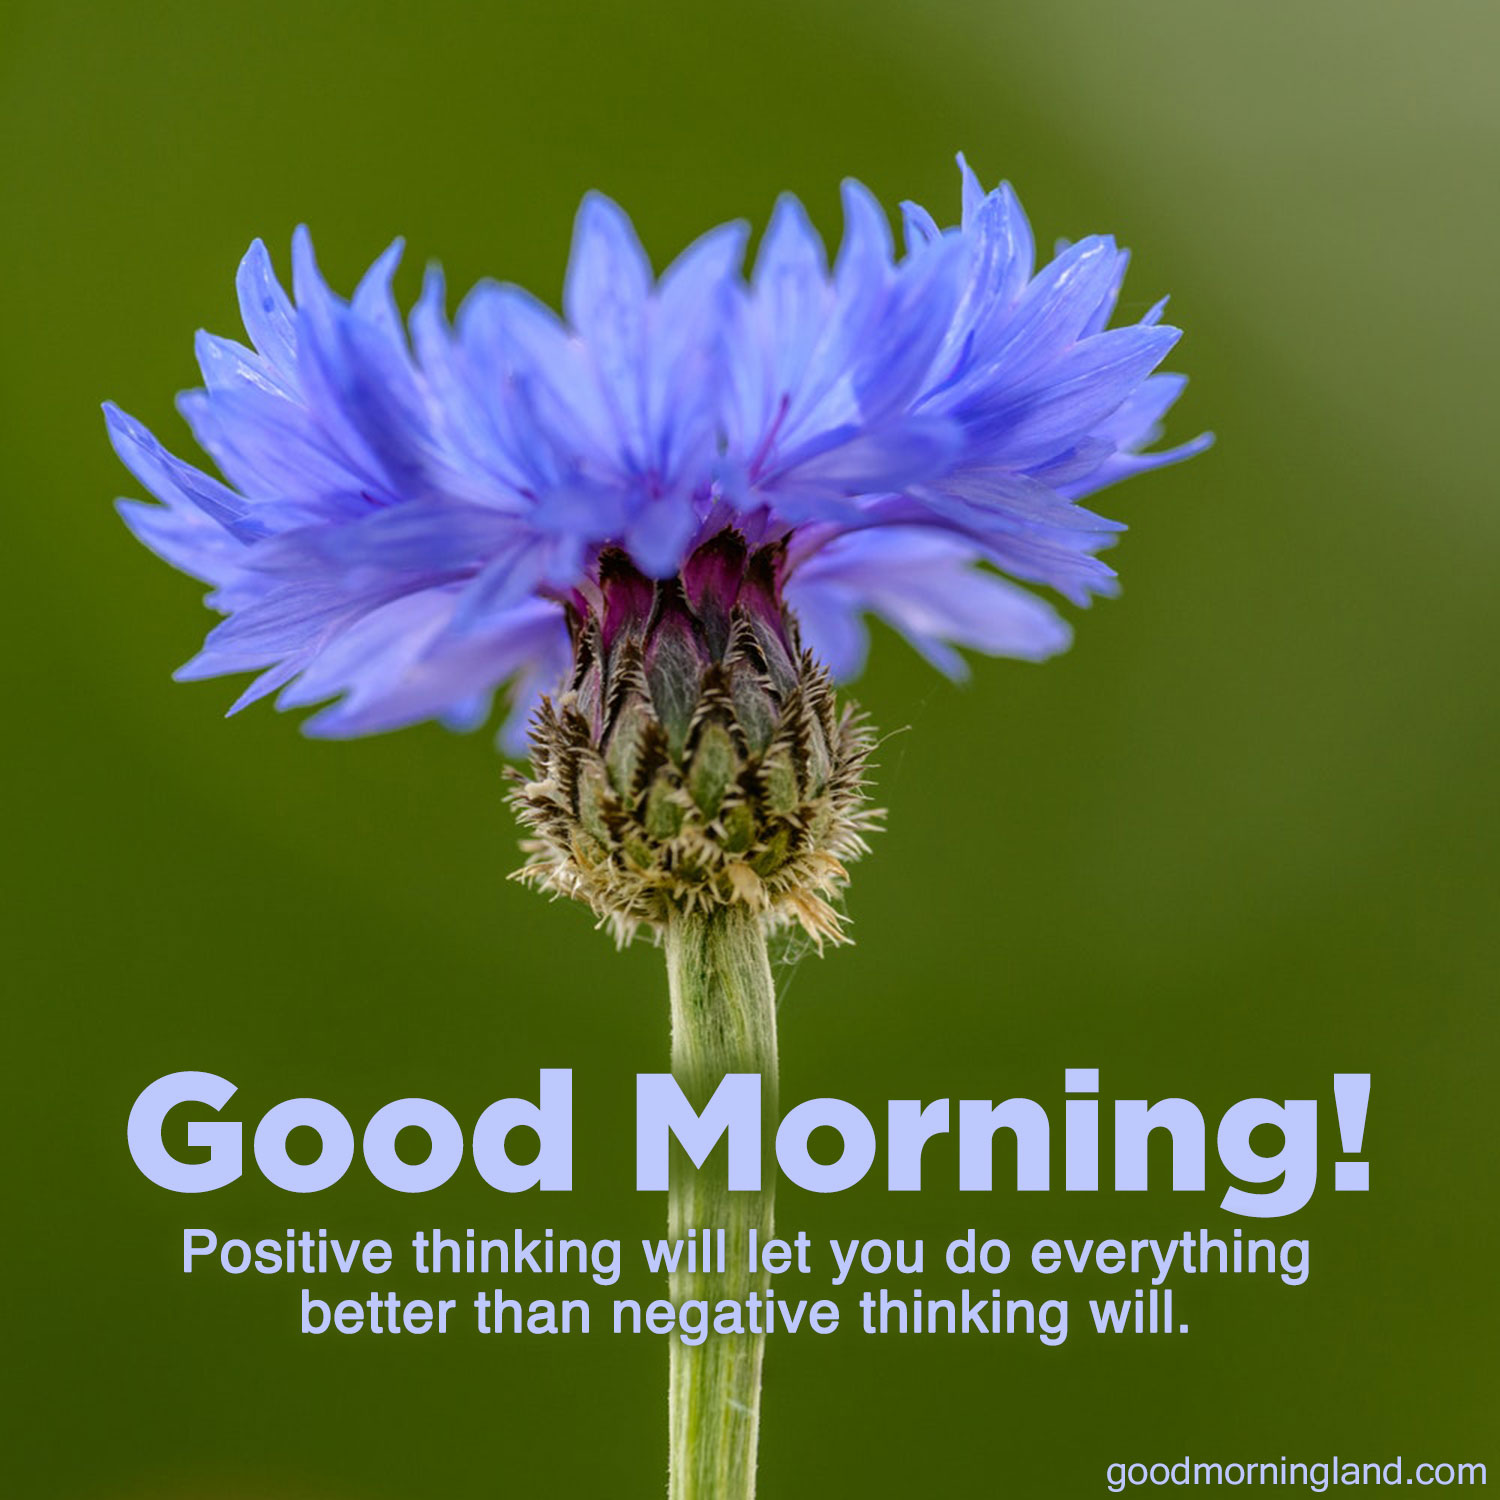 Send Awesome Message With Awesome Good Morning Message Images Good Morning Images Quotes Wishes Messages Greetings Ecards